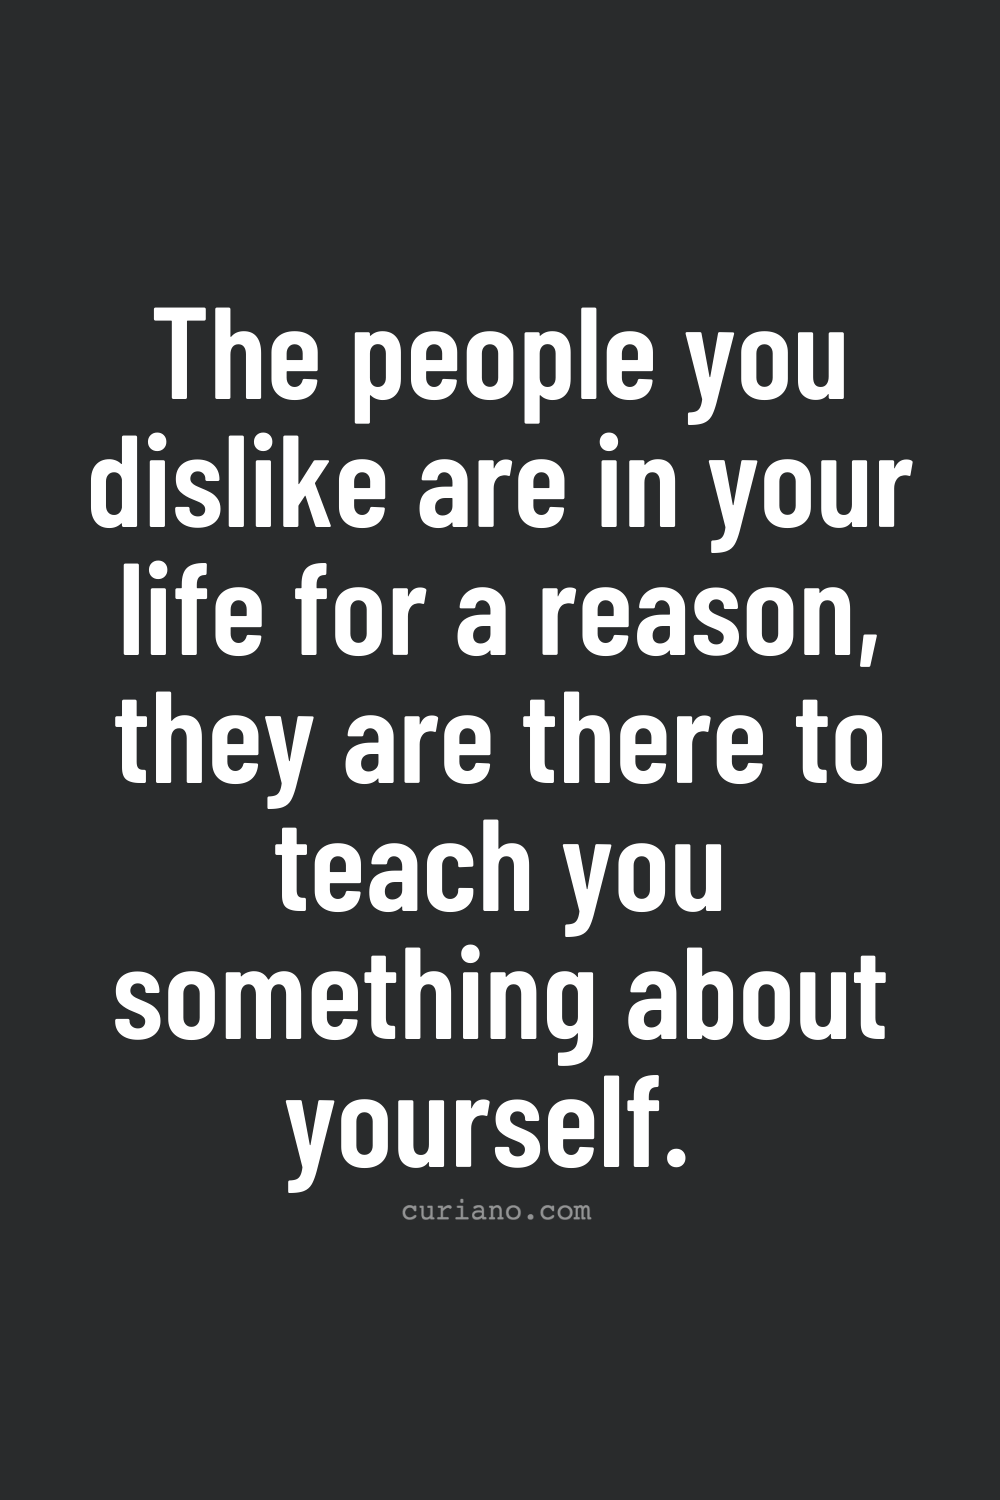 The people you dislike are in your life for a reason, they are there to teach you something about yourself.